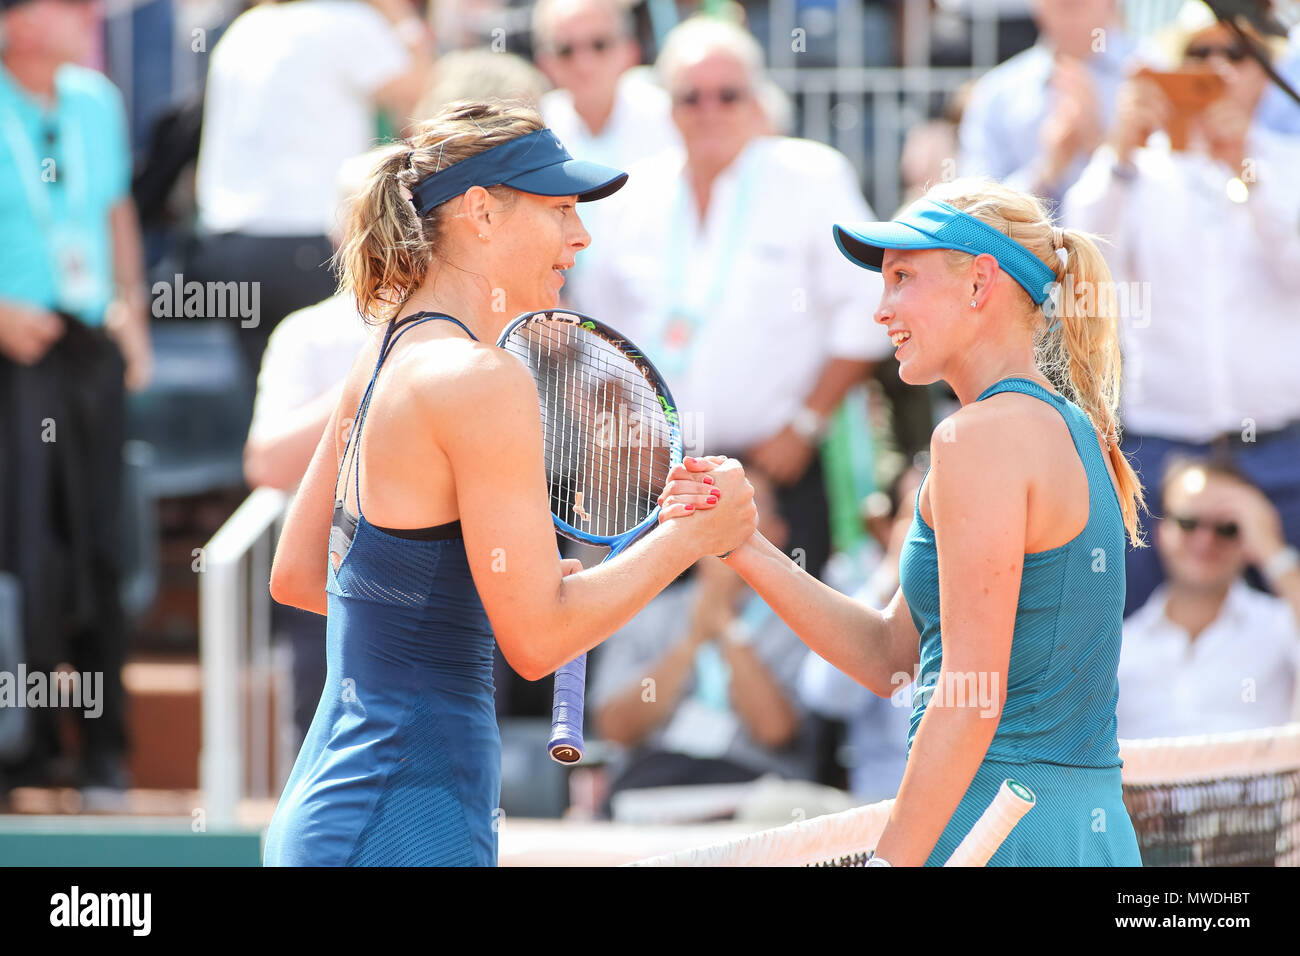 Paris france 31st may 2018 l r maria sharapova rus donna l r maria sharapova rus donna vekic cro tennis l r maria sharapova of russia and donna vekic of croatia greet each other after the womens m4hsunfo